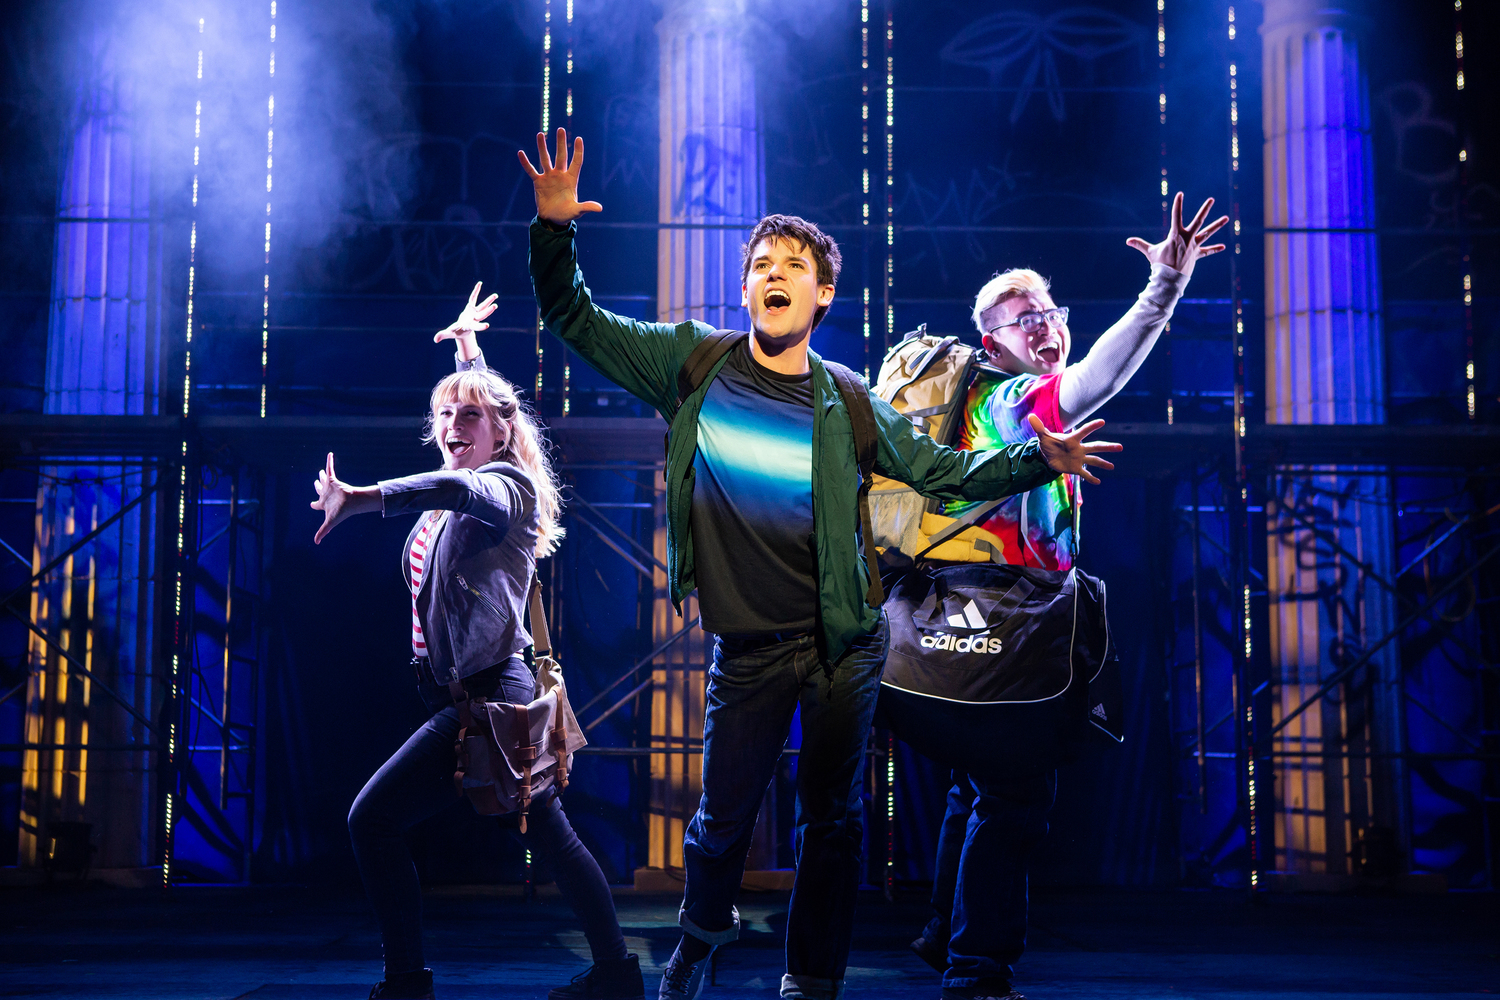 BWW Review: THE LIGHTNING THIEF: THE PERCY JACKSON MUSICAL at Ordway Center For The Performing Arts